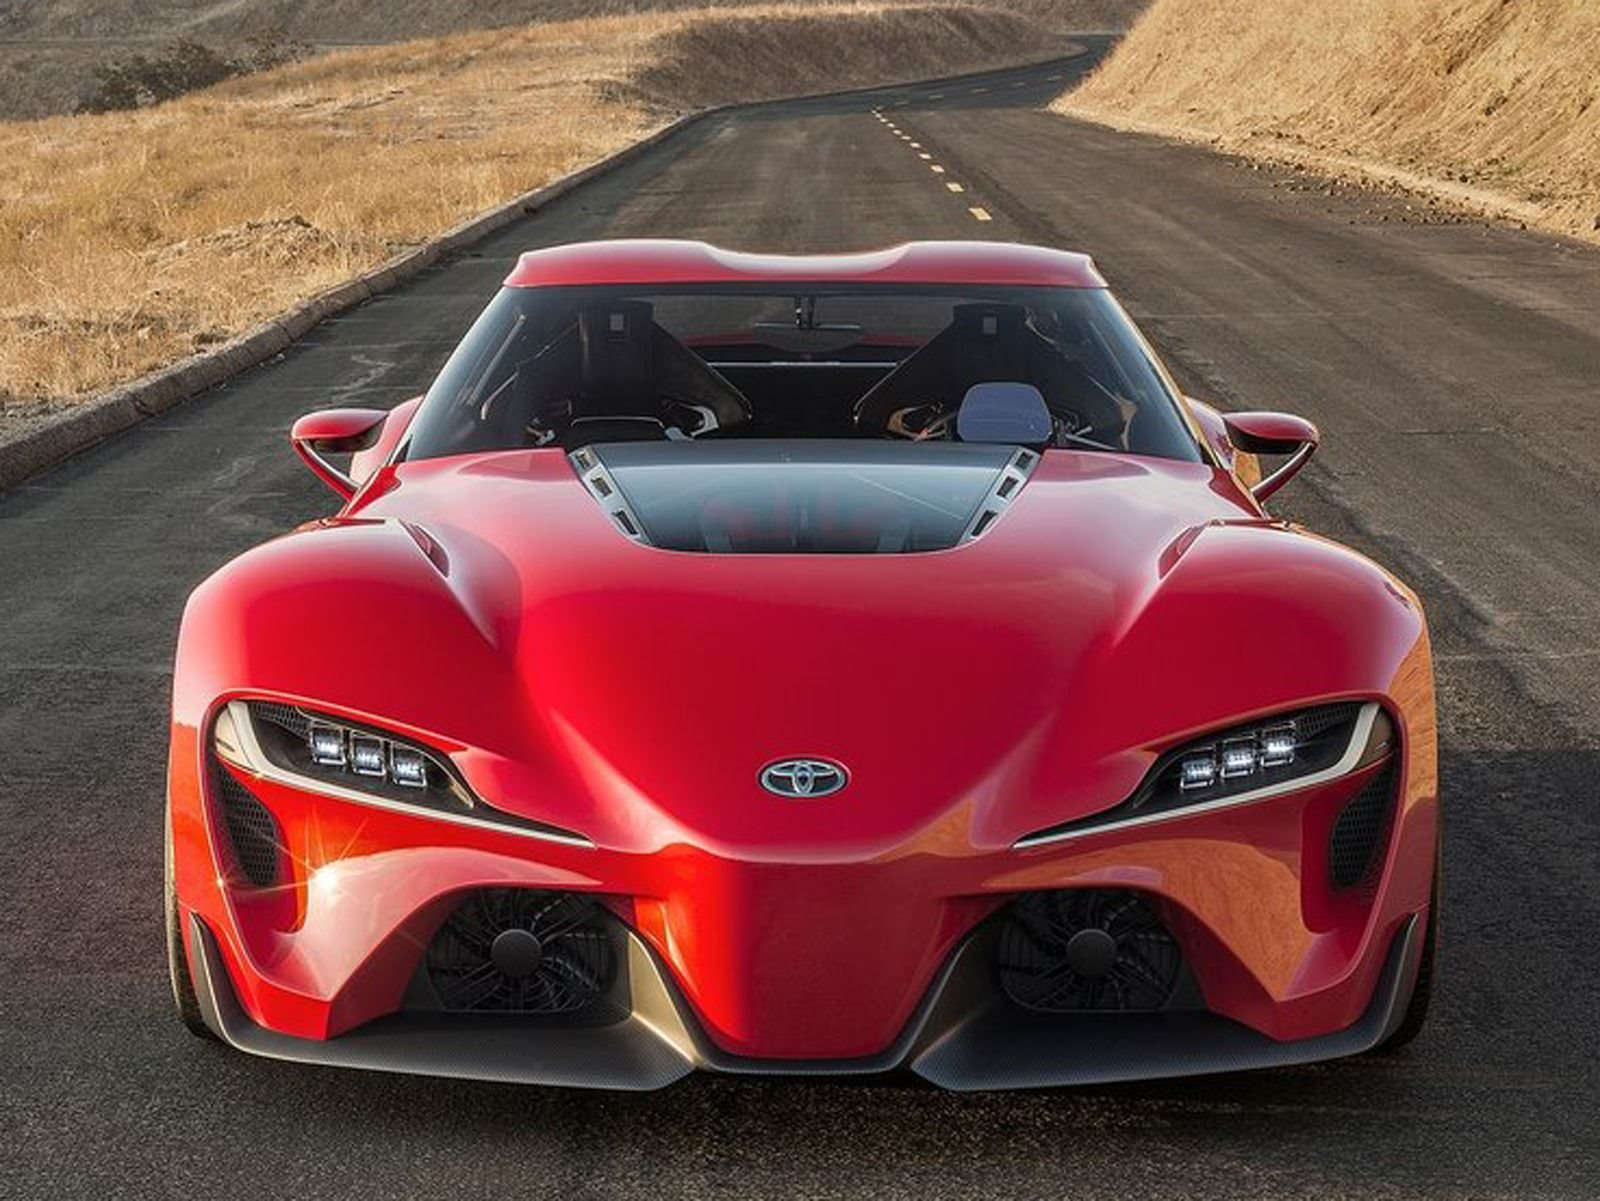 Toyota Ft1 Price >> The New BMW Z4 And Toyota Supra: Everything We Know So Far | CarBuzz